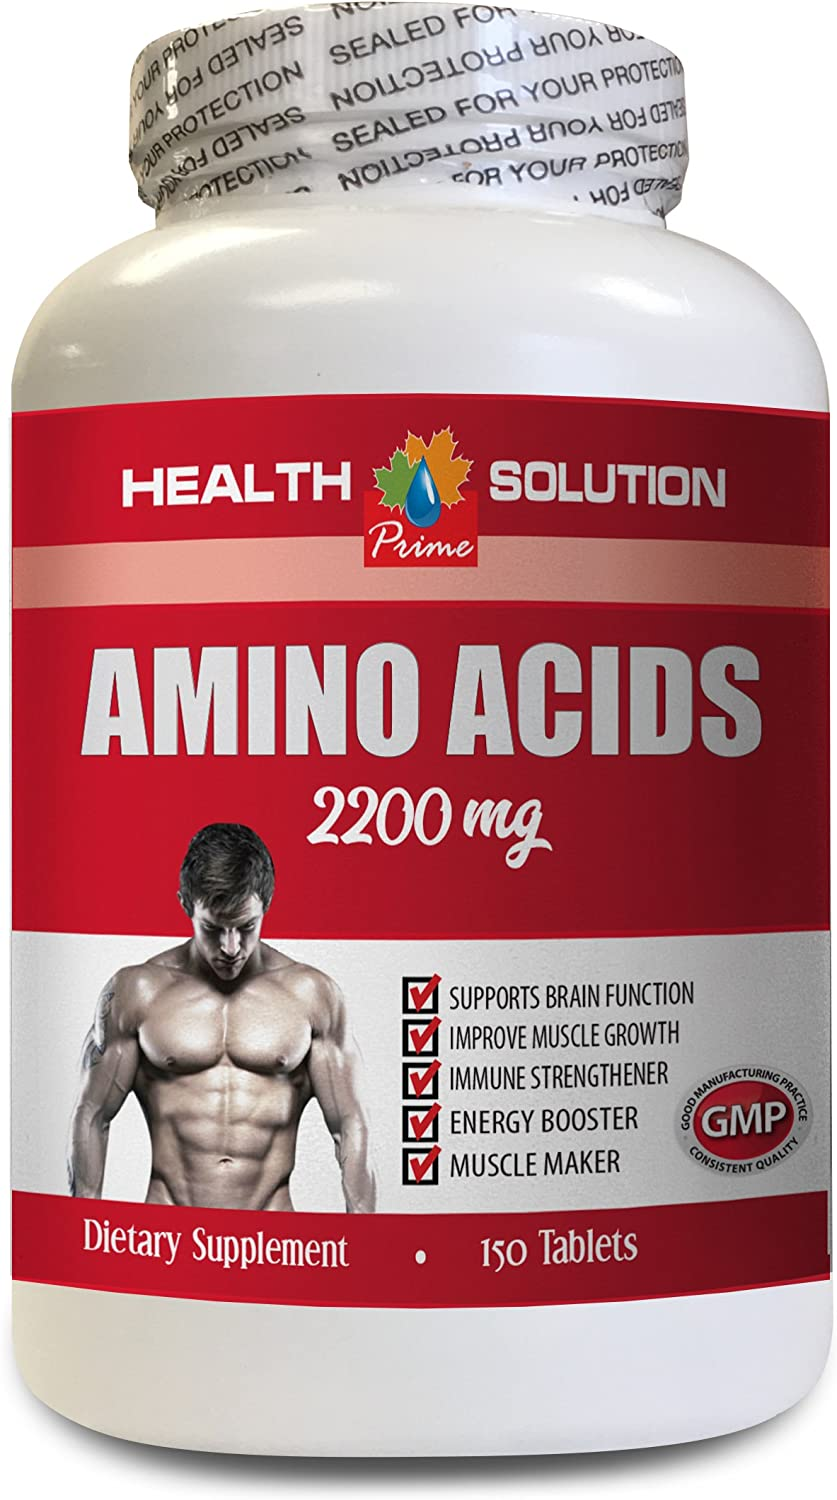 pre Workout Testosterone Booster - Amino ACIDS 2200 Mg - Muscle Maker - Amino acids Pills for Men - 1 Bottle 150 Tablets